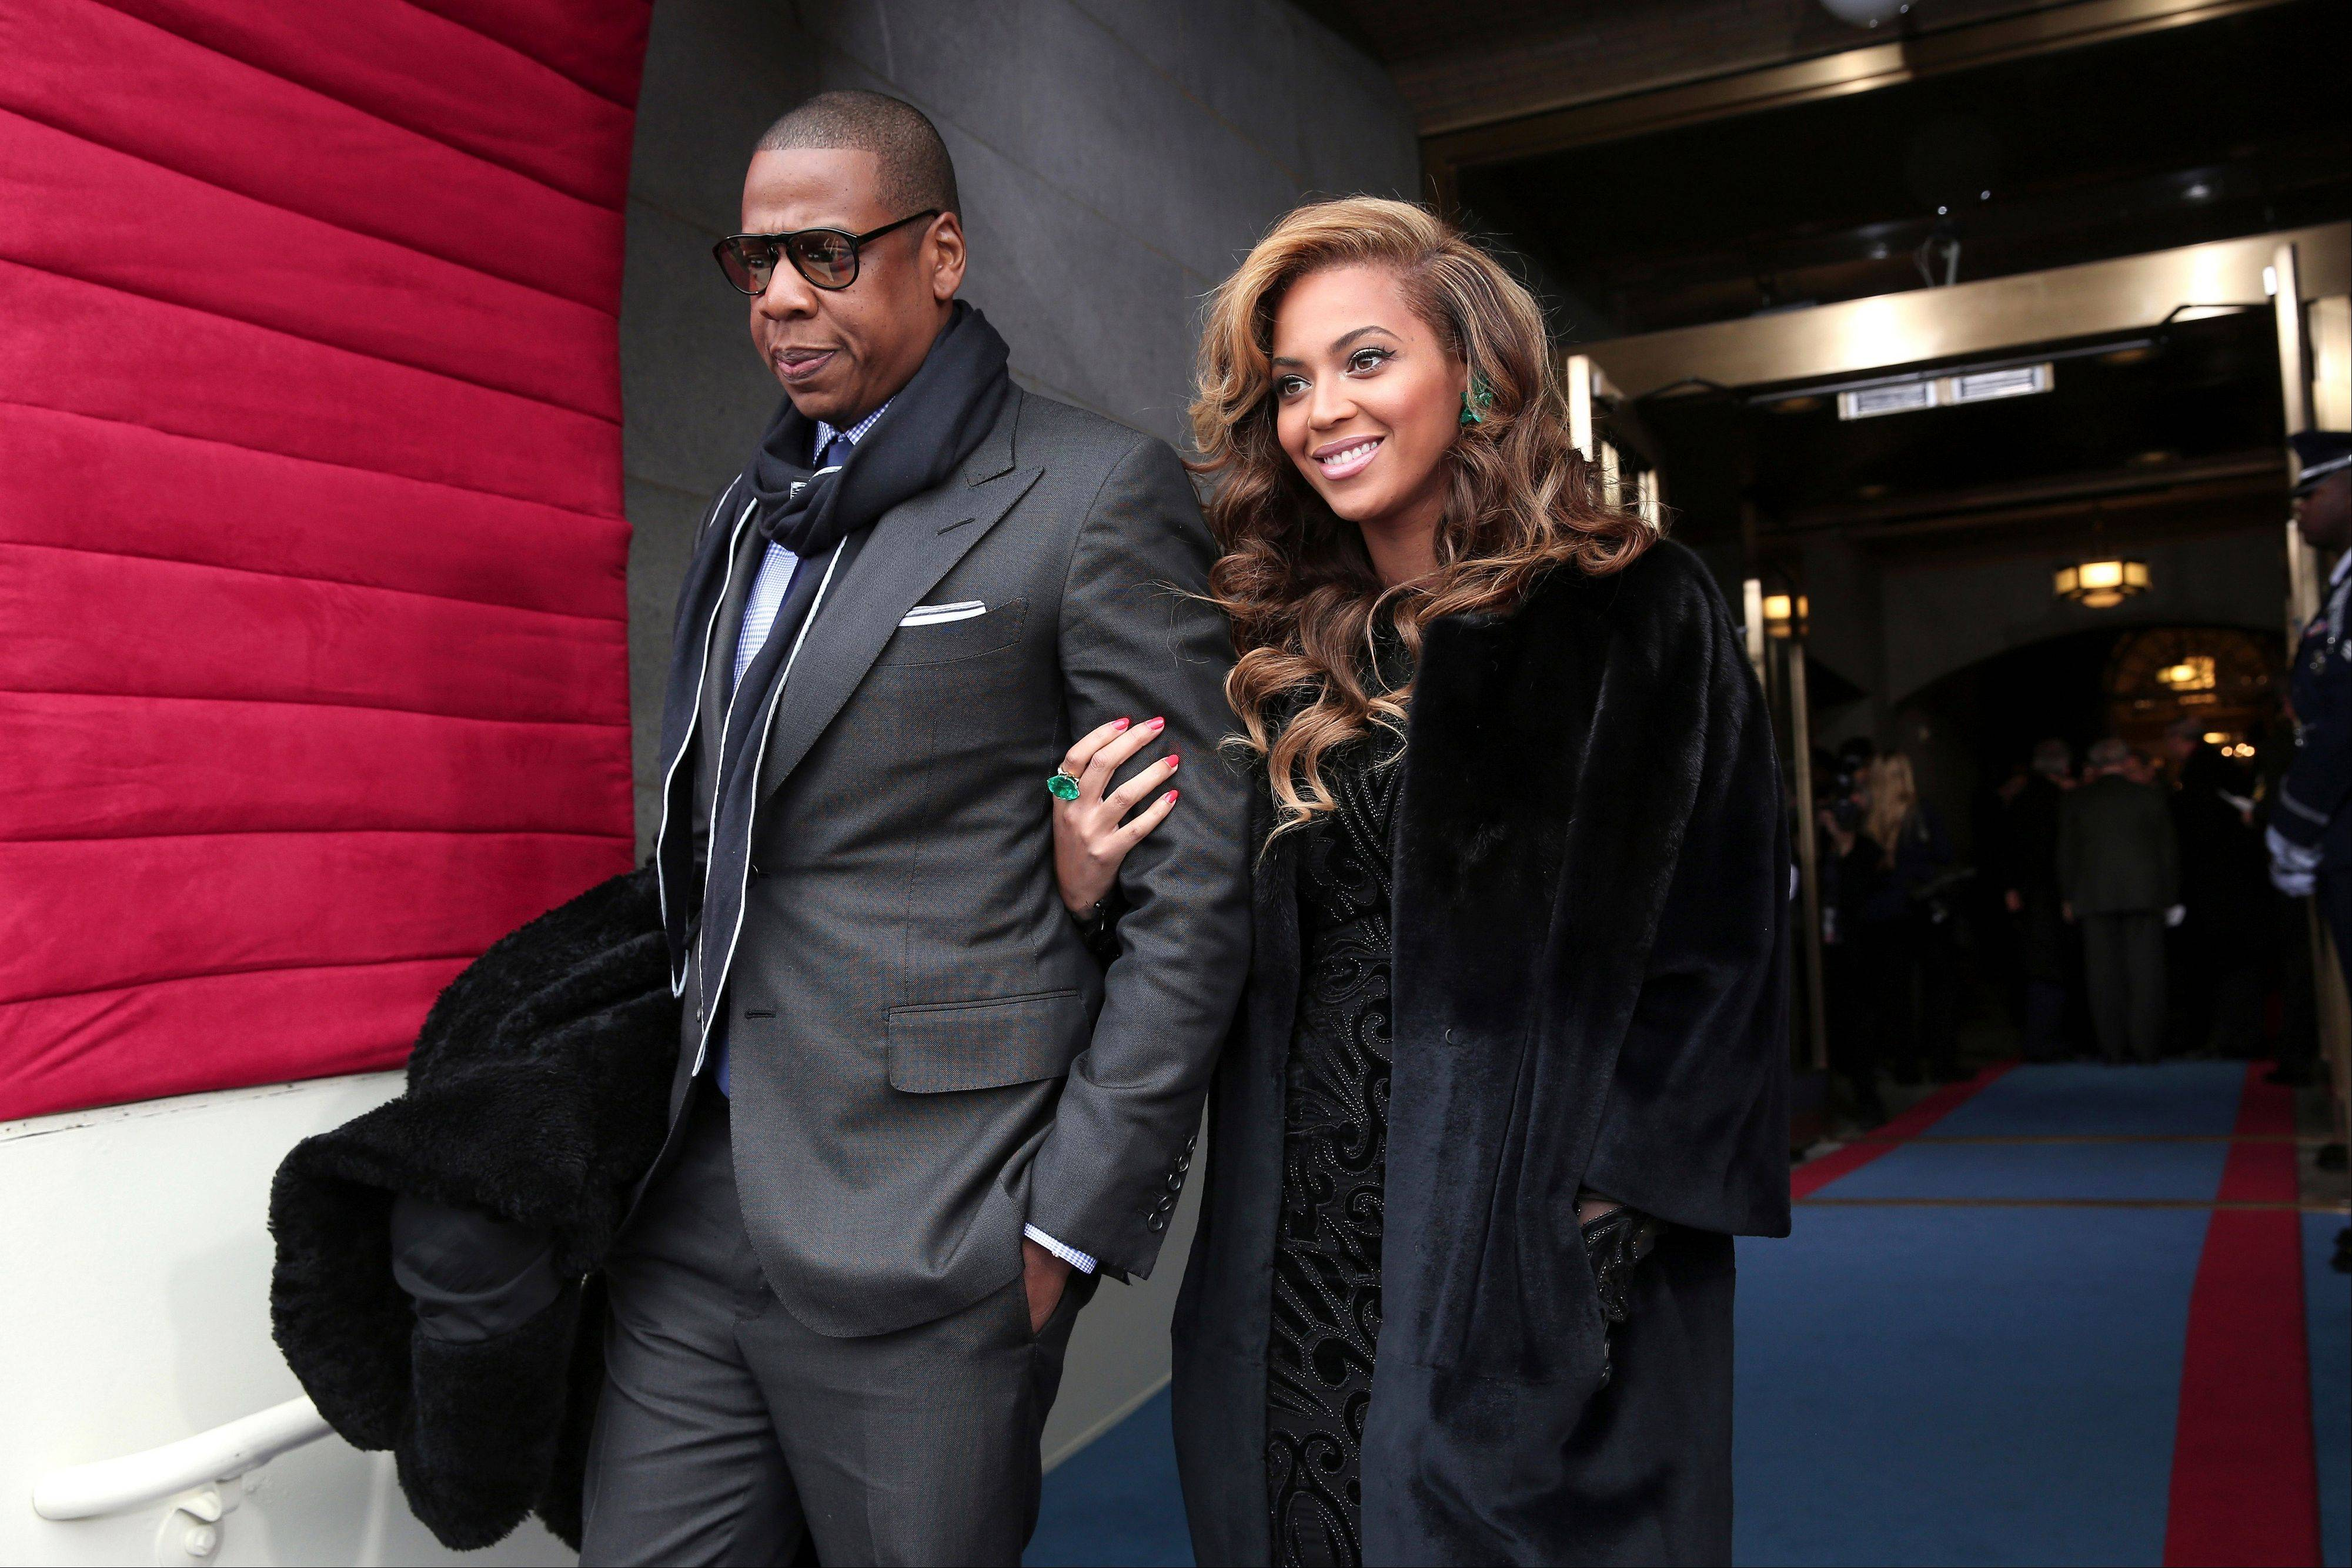 Recording artists Jay-Z and Beyonce arrive on the West Front of the Capitol in Washington, Monday, Jan. 21, 2013, for the Presidential Barack Obama's ceremonial swearing-in ceremony during the 57th Presidential Inauguration.